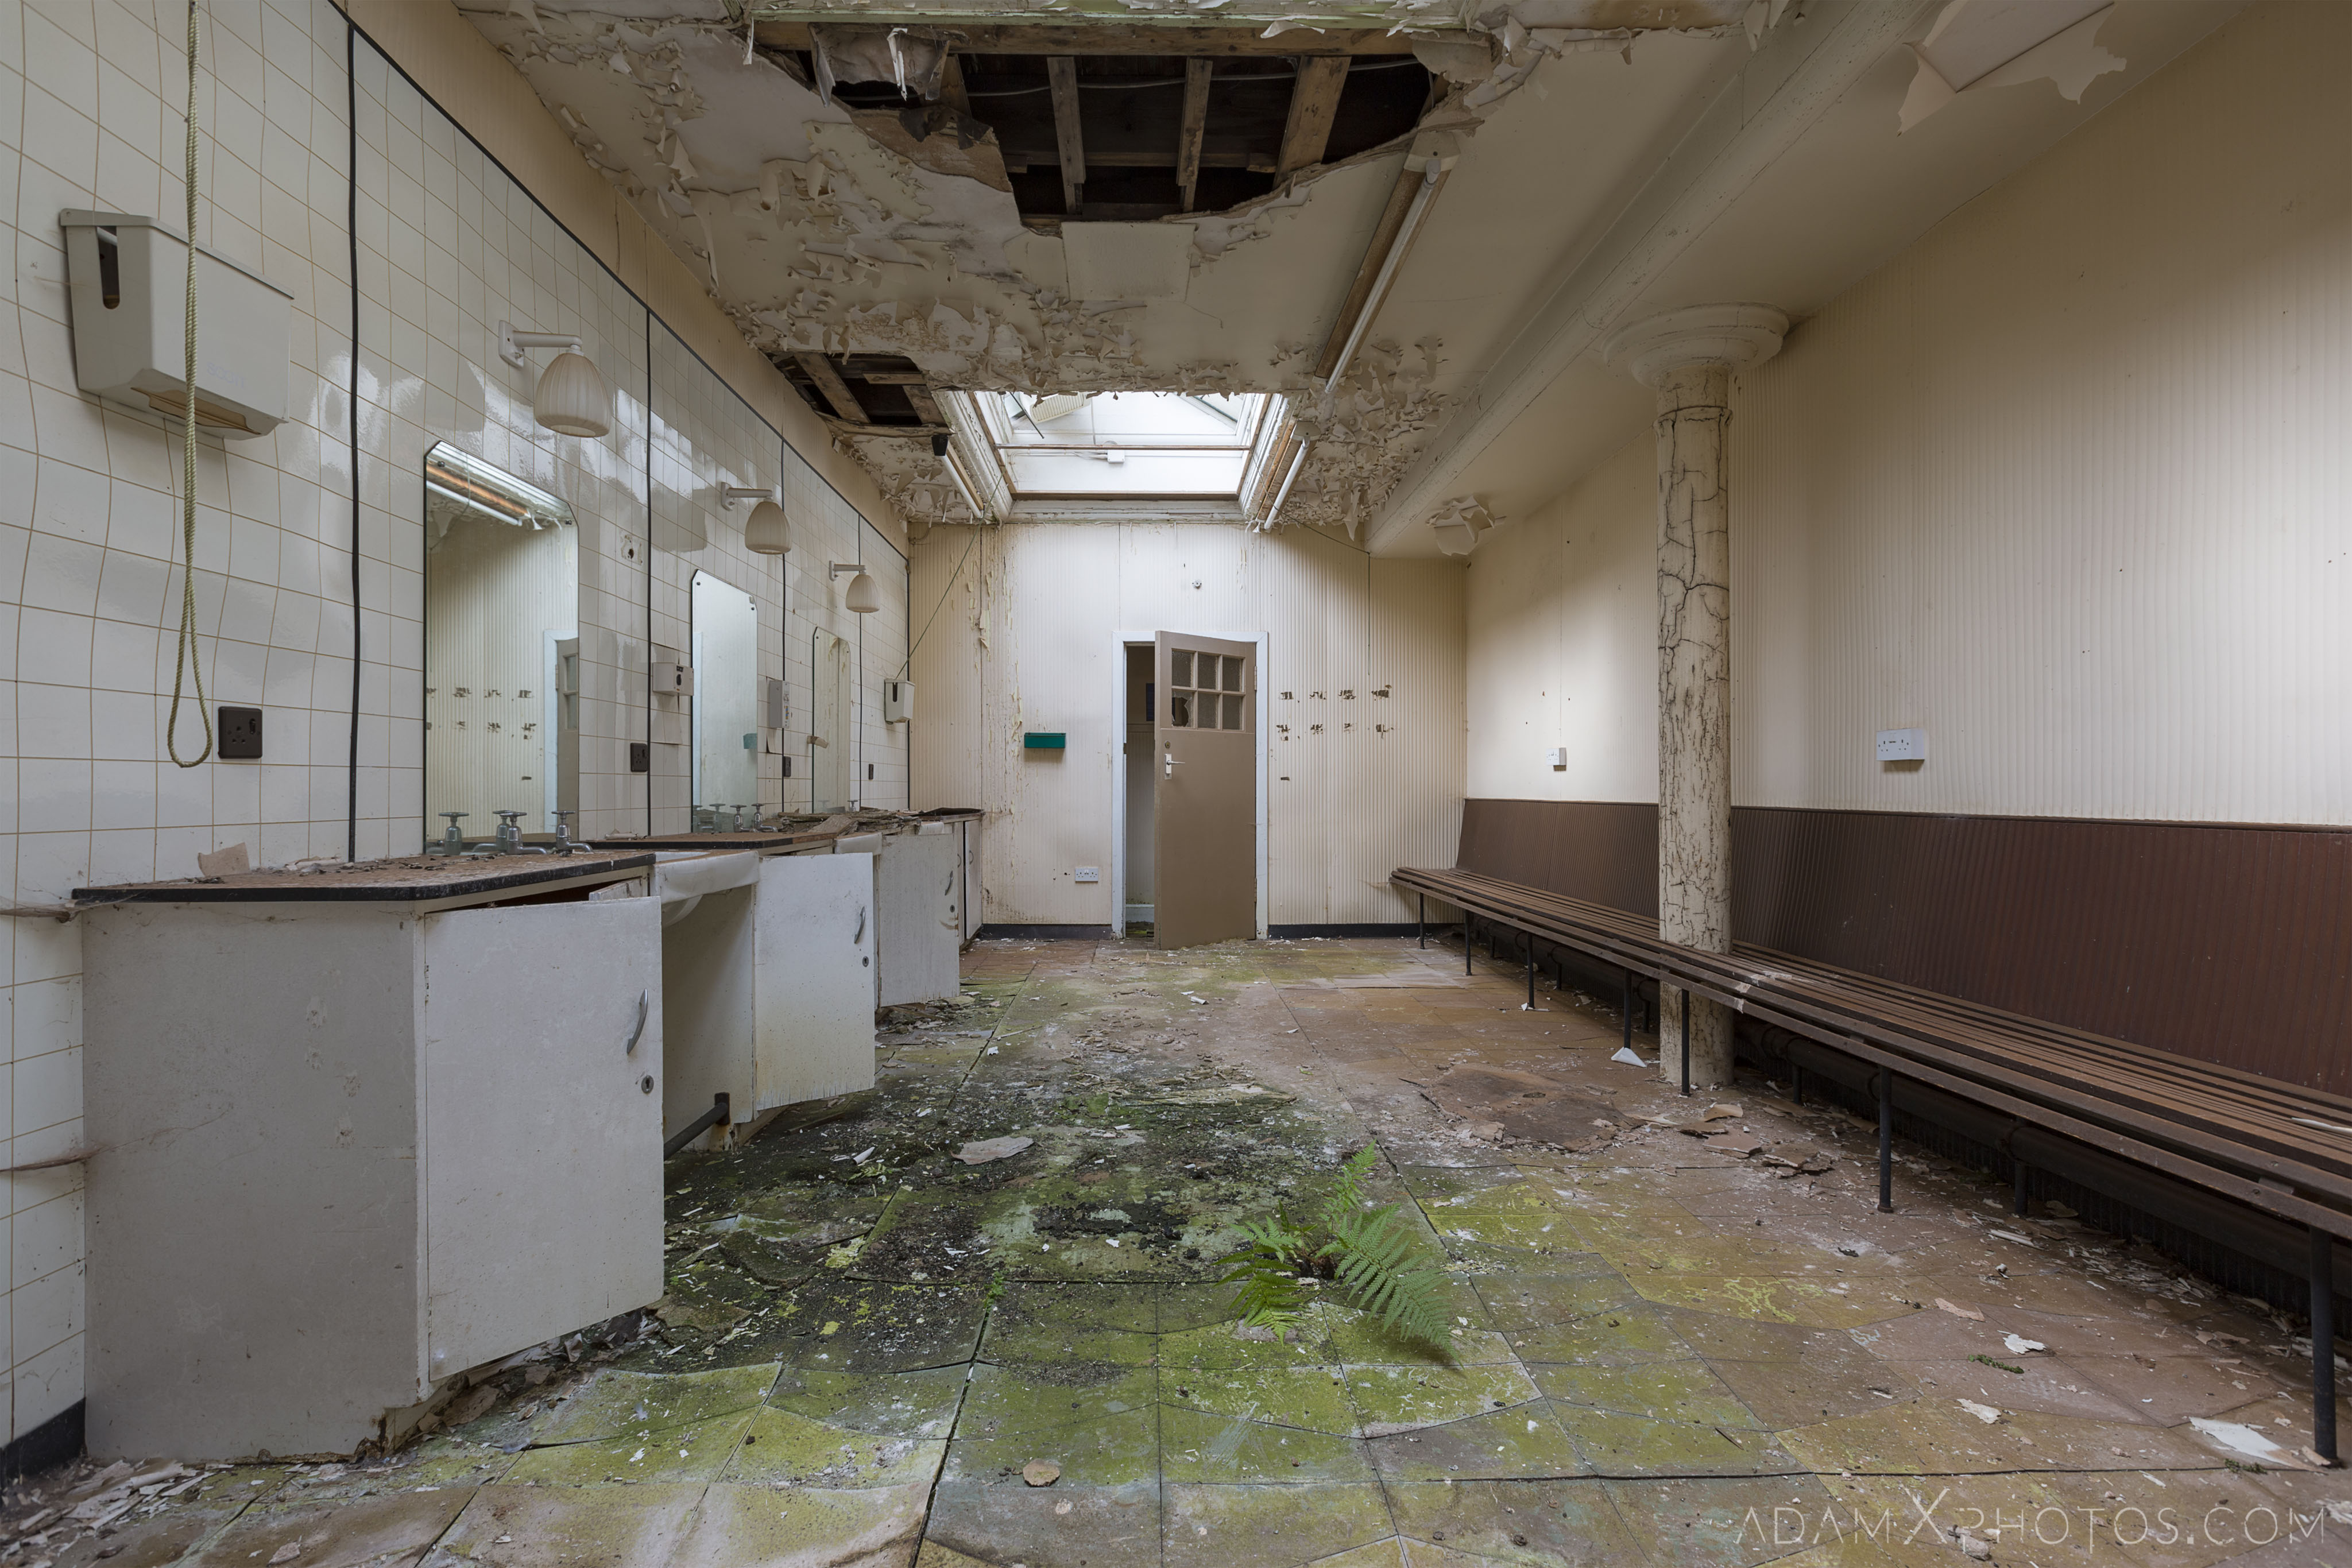 laundry area Stratheden Hospital Fife Scotland Adam X Urbex Urban Exploration Access 2018 Abandoned decay ruins lost forgotten derelict location creepy haunting eerie